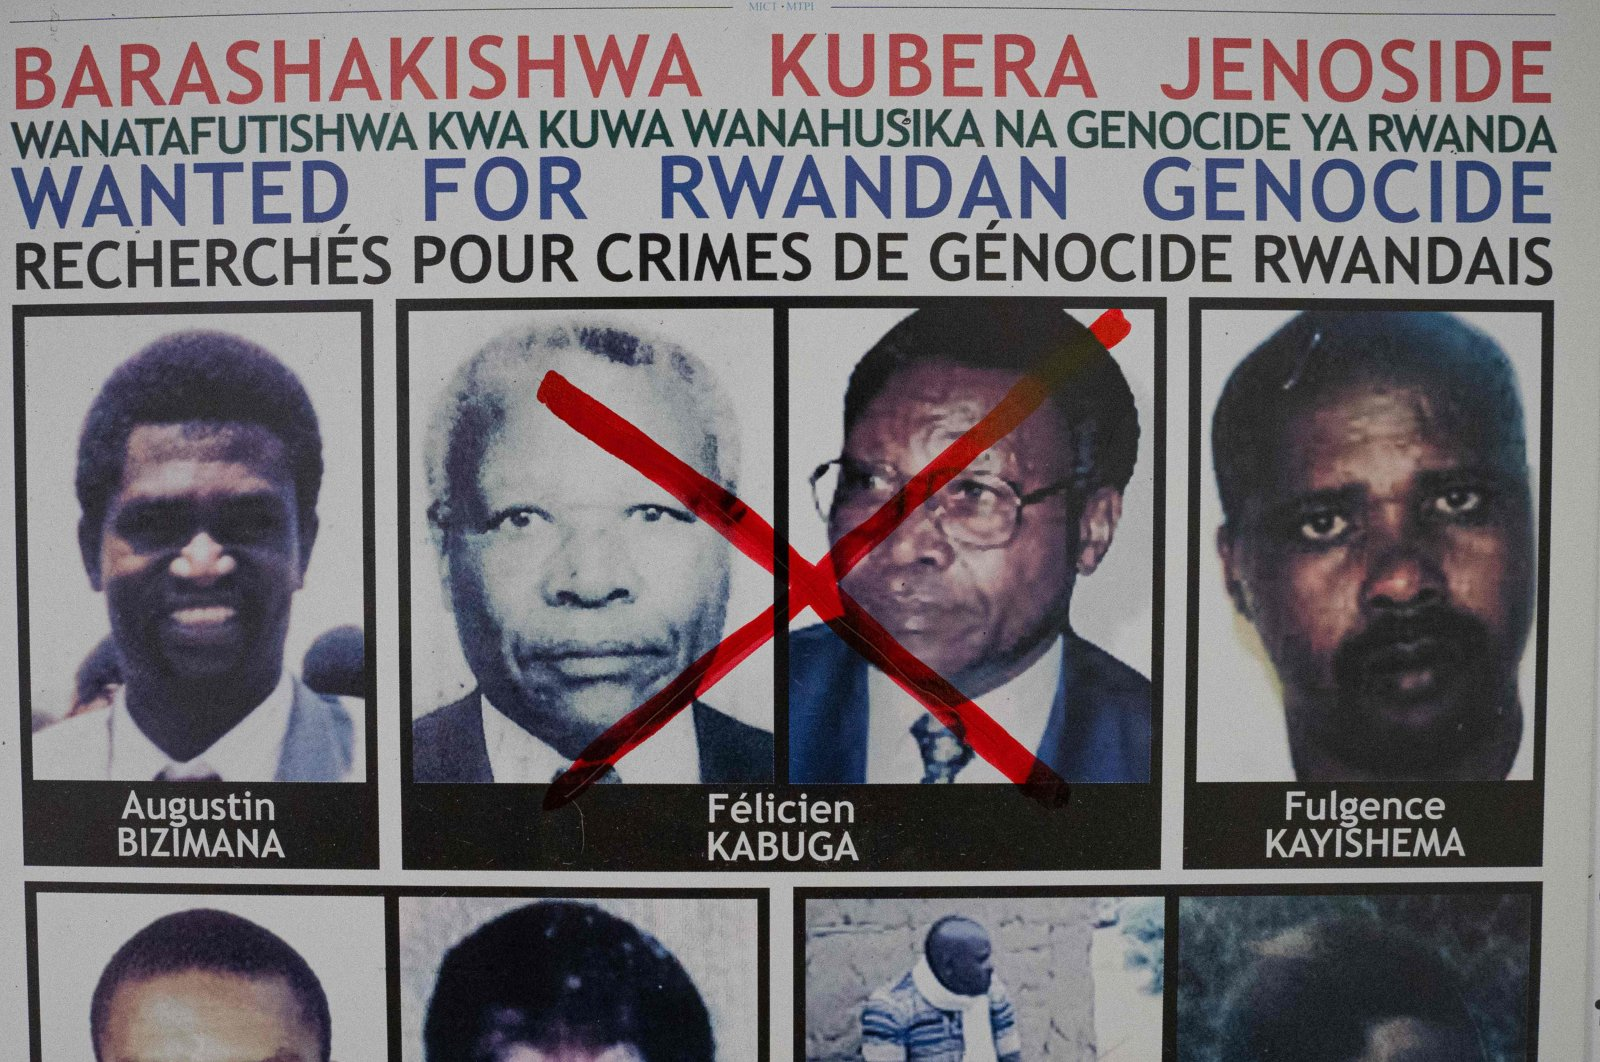 A red cross is seen drawn on the face of Felicien Kabuga, one of the last key suspects in the 1994 Rwandan genocide, on a wanted poster at the Genocide Fugitive Tracking Unit office in Kigali, Rwanda, May 19, 2020. (AFP)